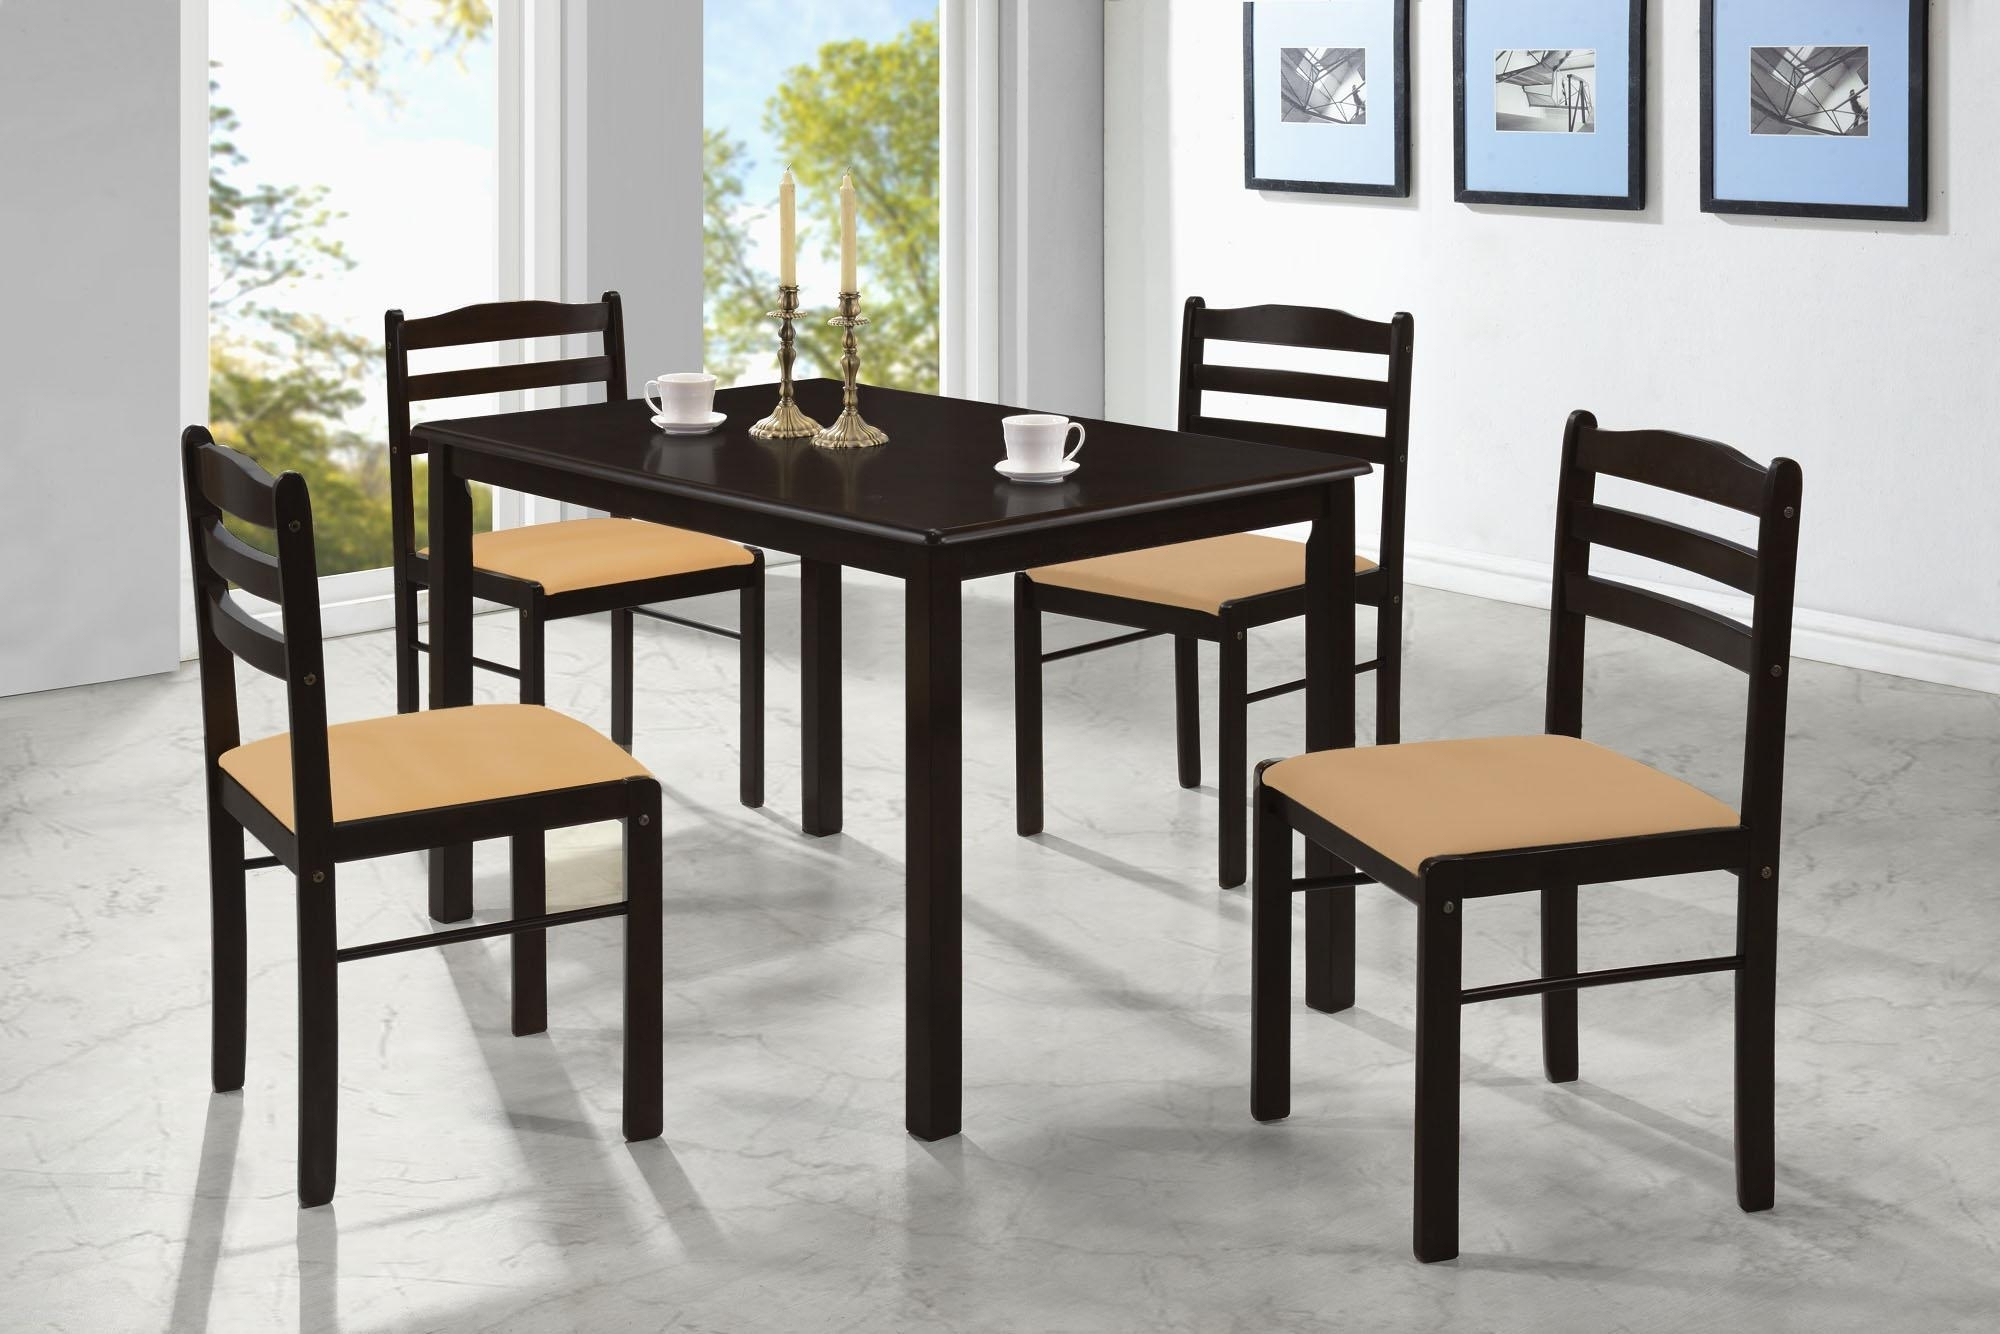 Latest Kitchen Furniture For Sale – Dining Furniture Prices, Brands Pertaining To Cheap Dining Tables And Chairs (View 18 of 25)